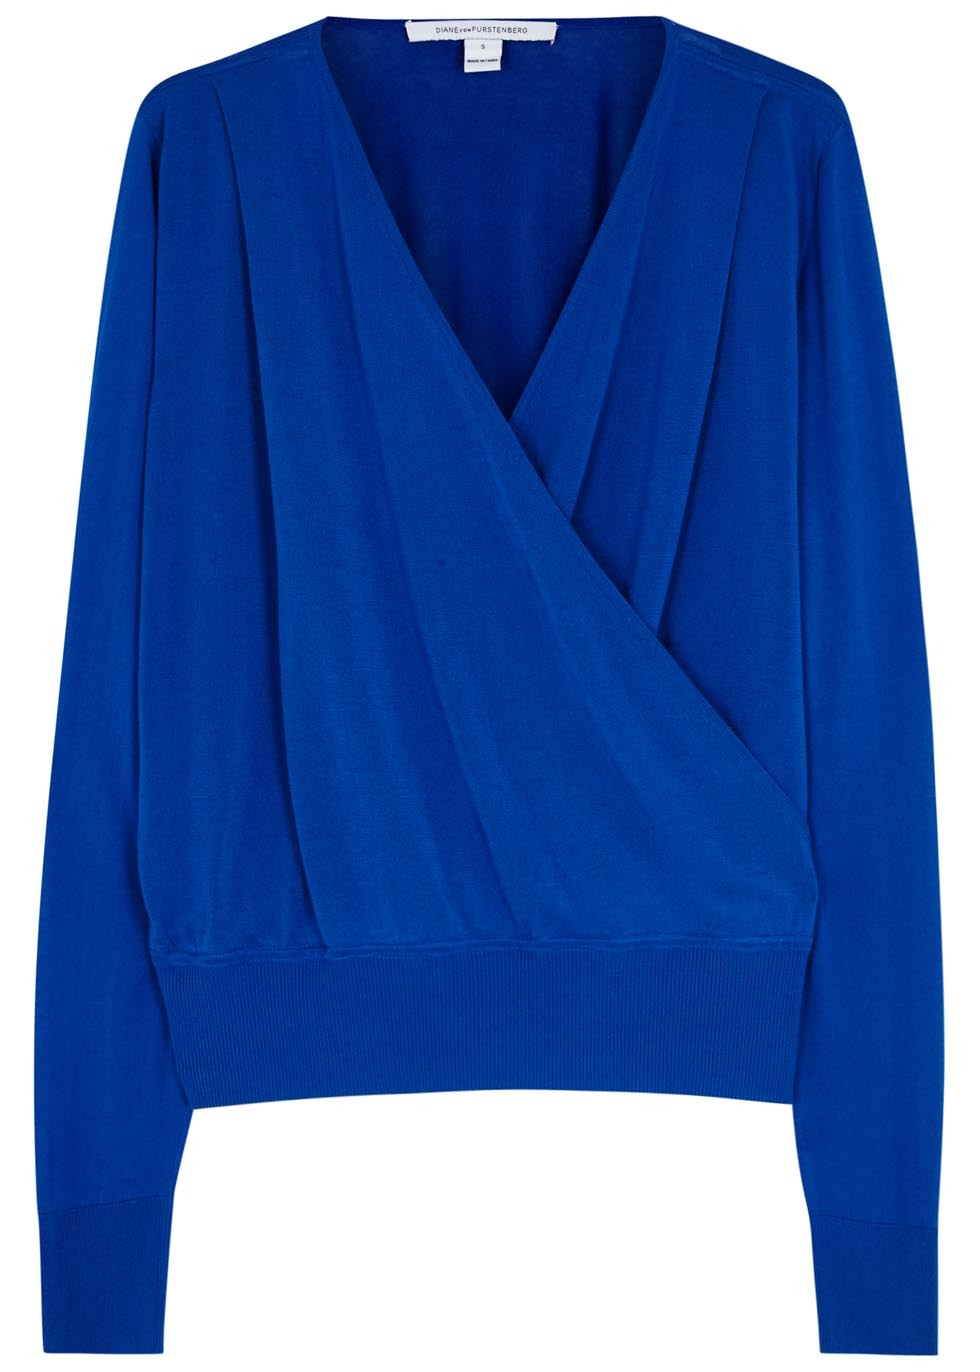 Paz Blue Wrap Effect Fine Knit Jumper - neckline: v-neck; pattern: plain; style: faux wrap/wrap; predominant colour: royal blue; occasions: evening; length: standard; fibres: cotton - mix; fit: standard fit; sleeve length: long sleeve; sleeve style: standard; texture group: knits/crochet; pattern type: fabric; season: s/s 2016; wardrobe: event